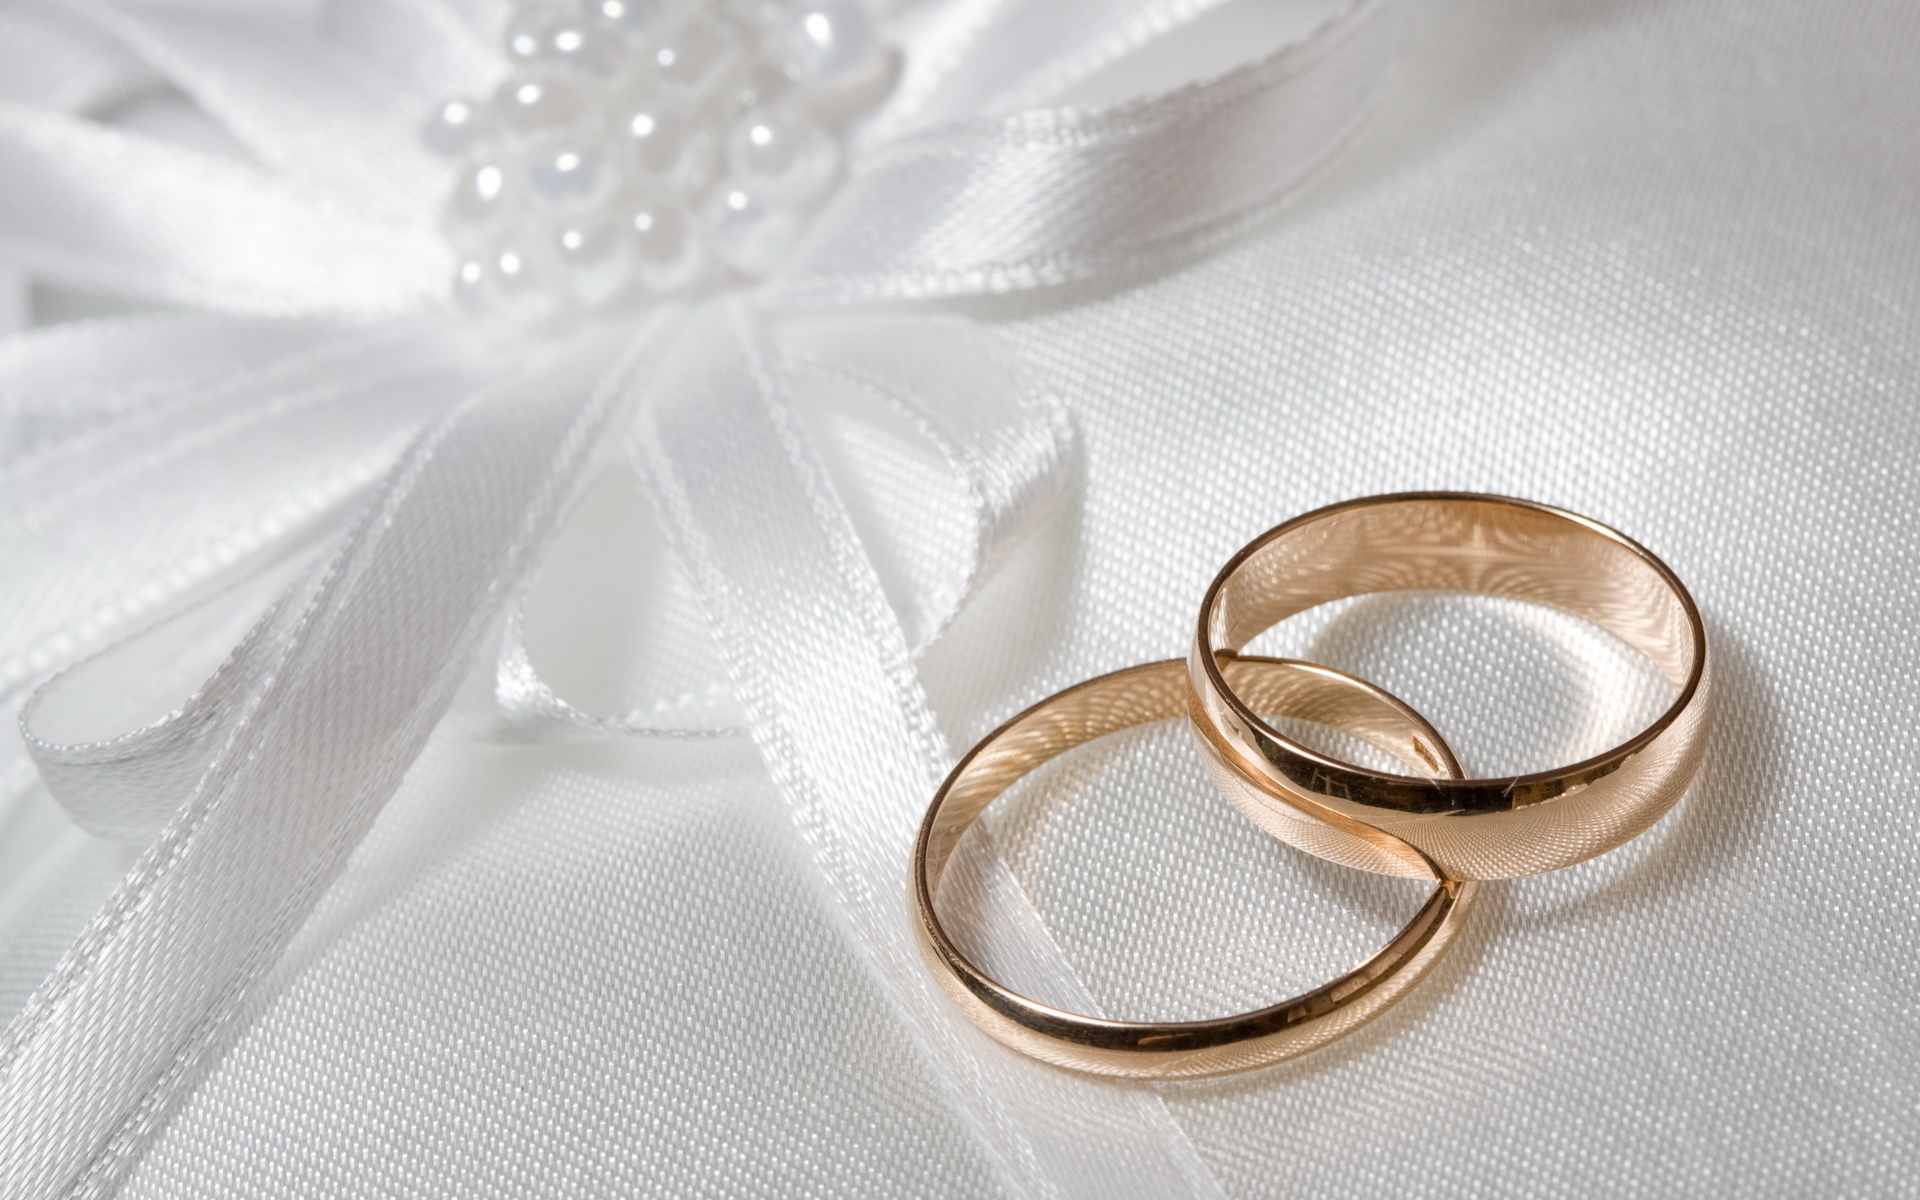 Wedding Ring Ceremony Wallpapers Tumblr